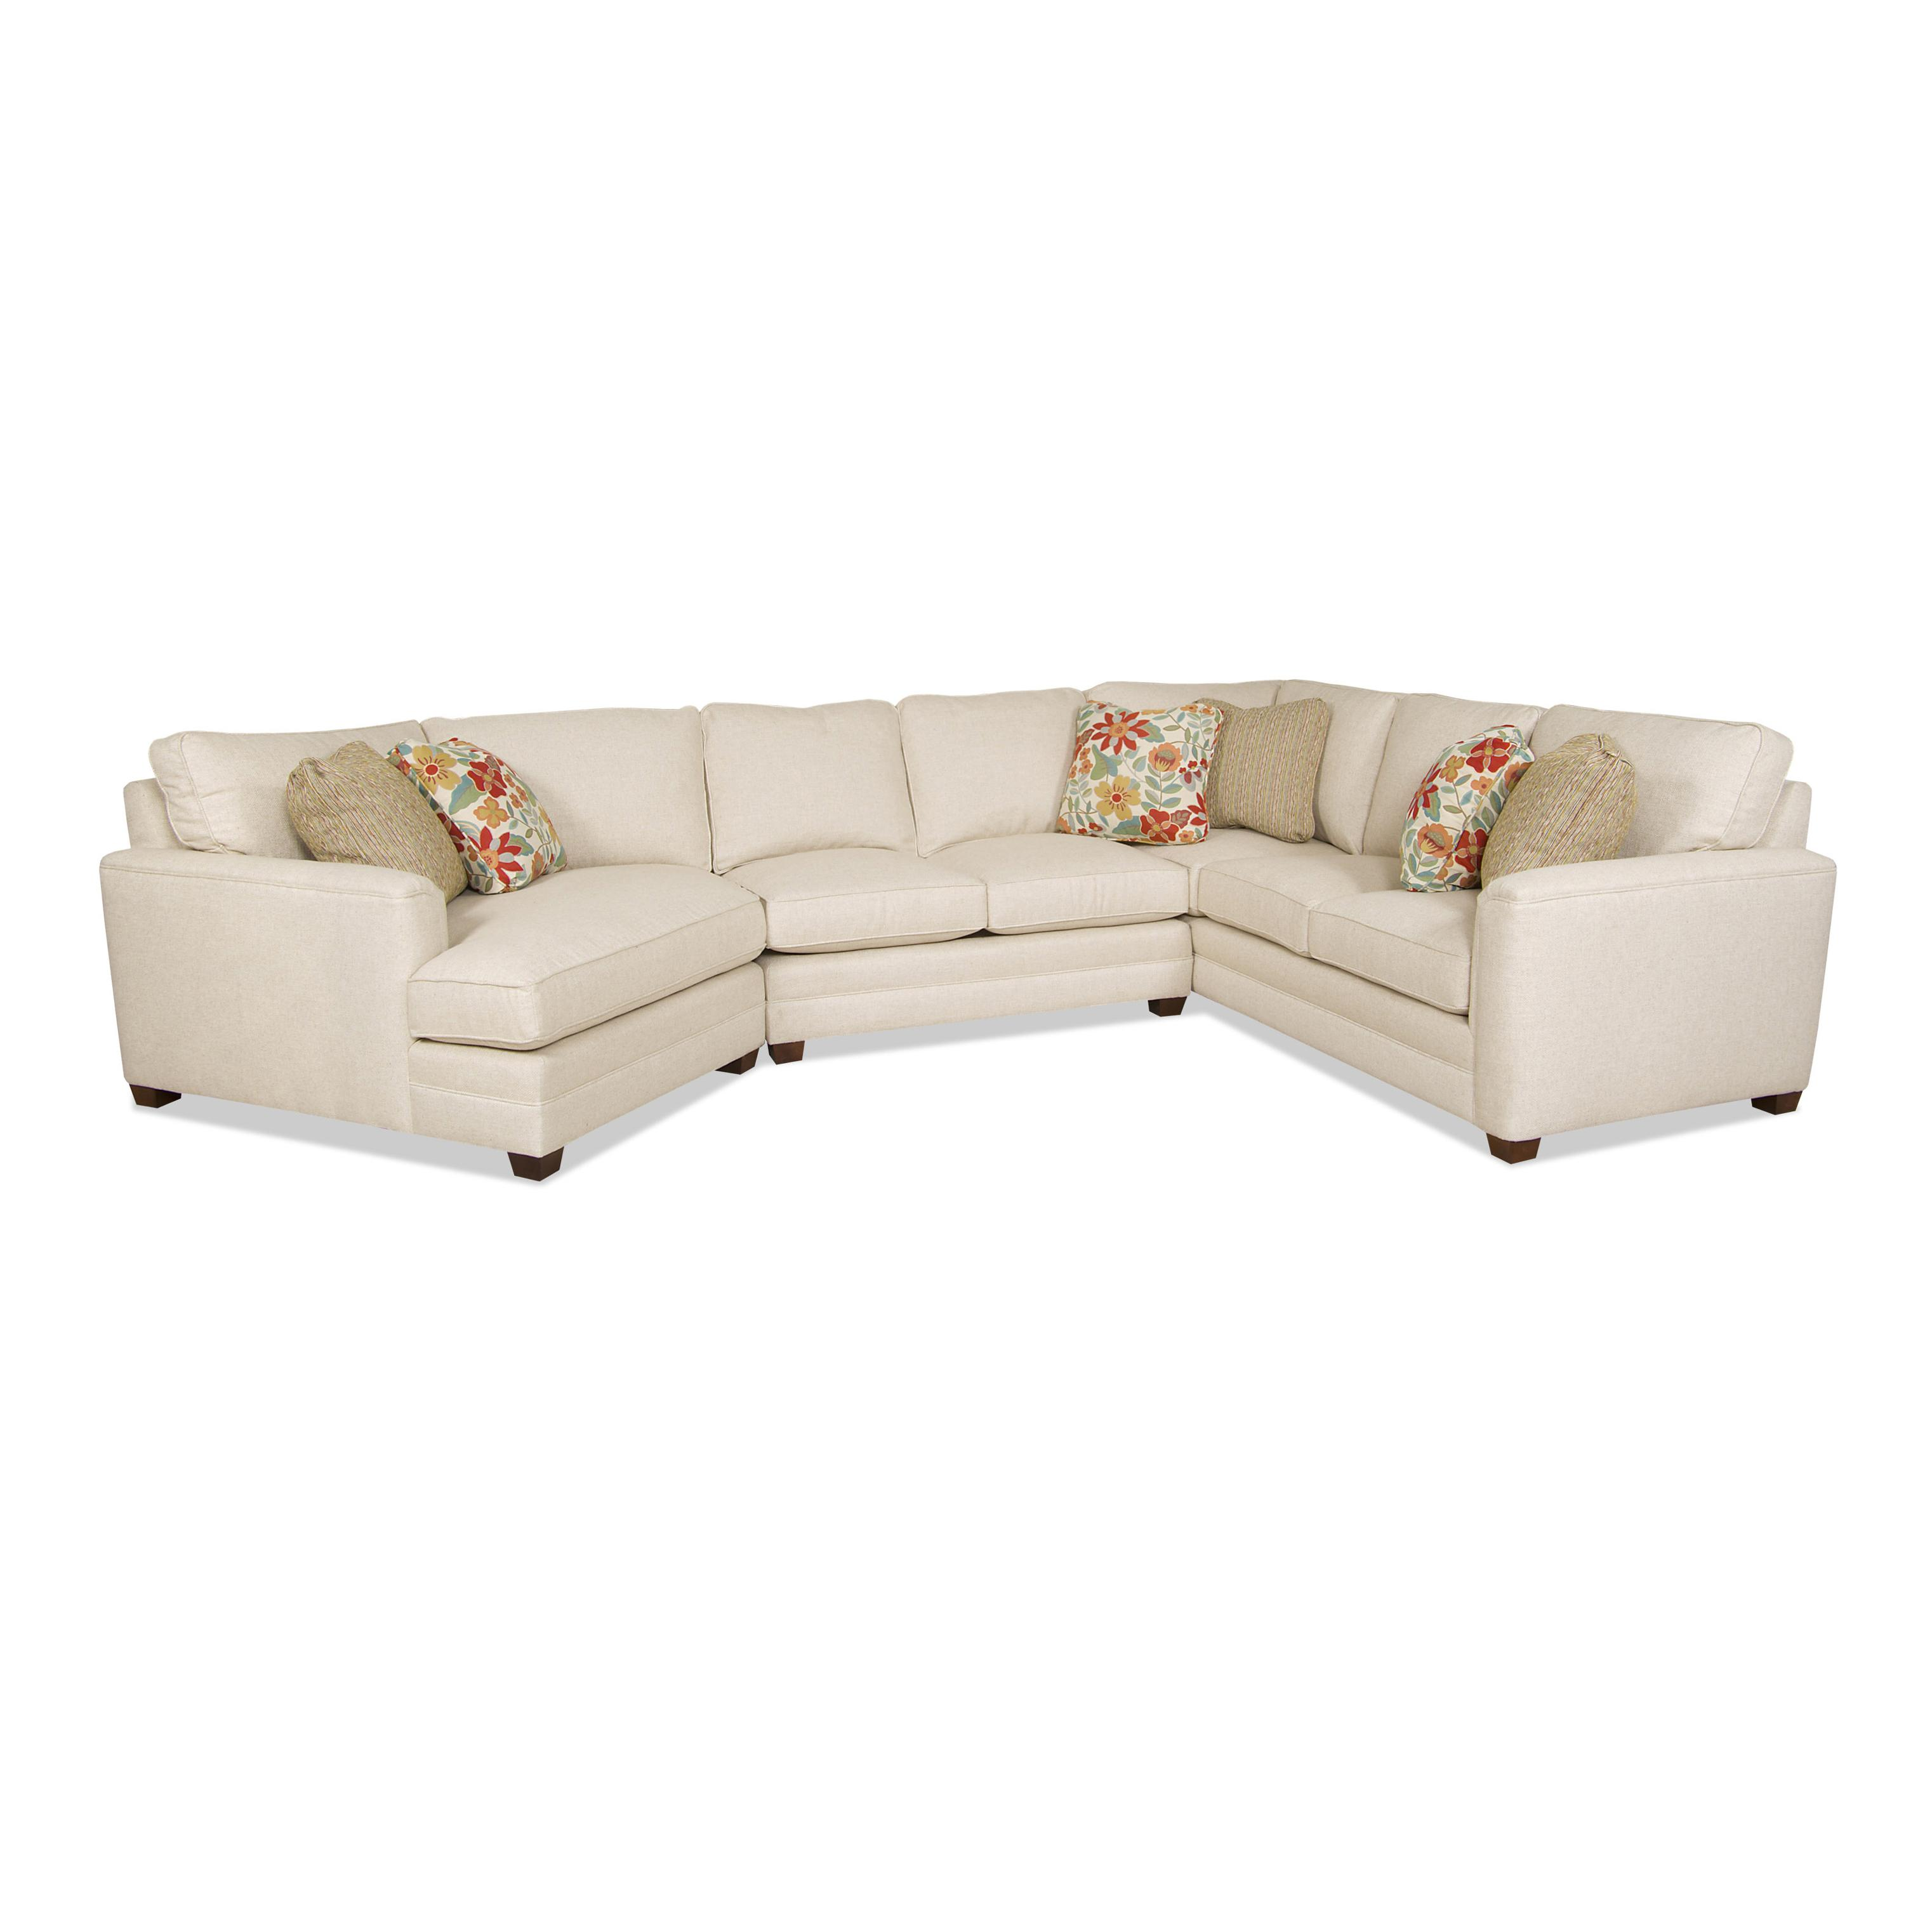 Superieur Raleigh Transitional Sectional Sofa By Sam Moore